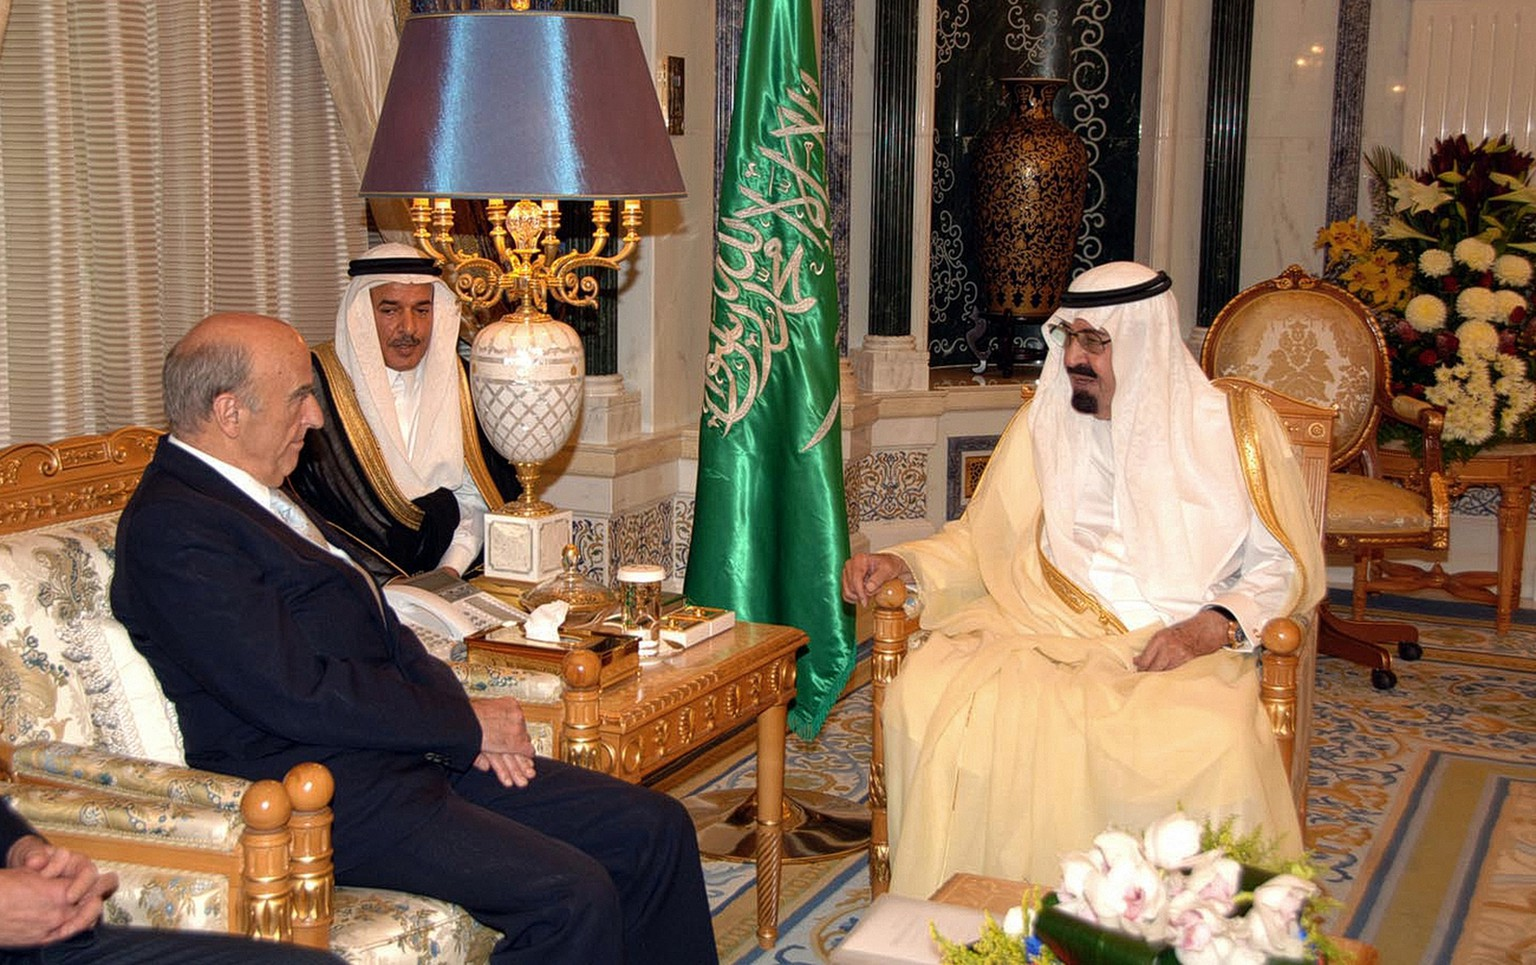 In this photo released by Saudi Press Agency, Swiss Federal President Hans-Rudolf Merz, left, speaks with King Abdullah of Saudi Arabia in Riyadh, Saudi Arabia, Sunday, May 24, 2009. (AP Photo/Saudi Press Agency) ** EDITORIAL USE ONLY, NO SALES **